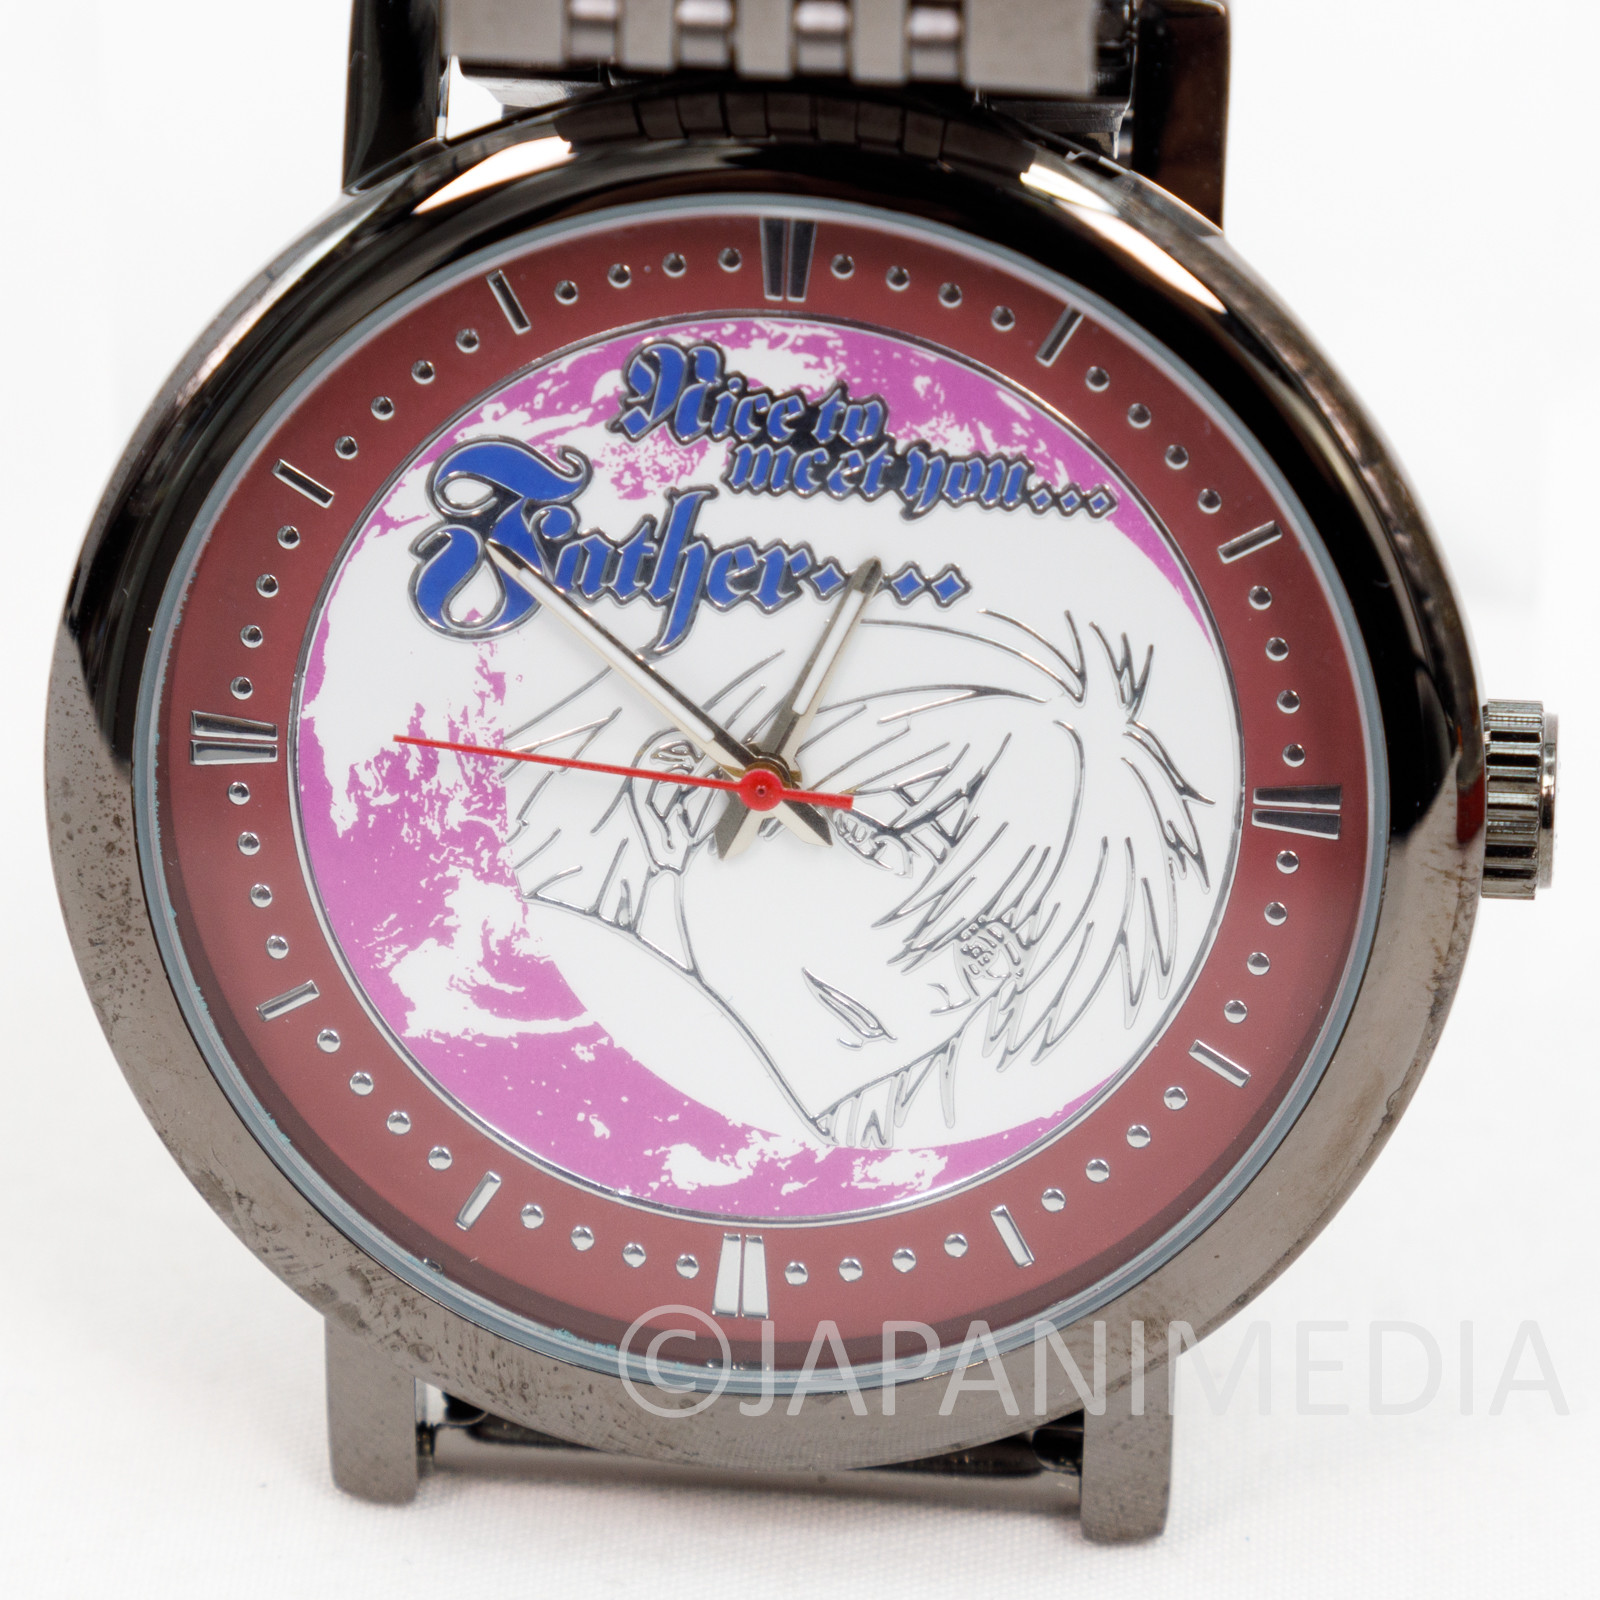 Evangelion Kaworu Nagisa Wrist Watch in Tin Can Box SEGA